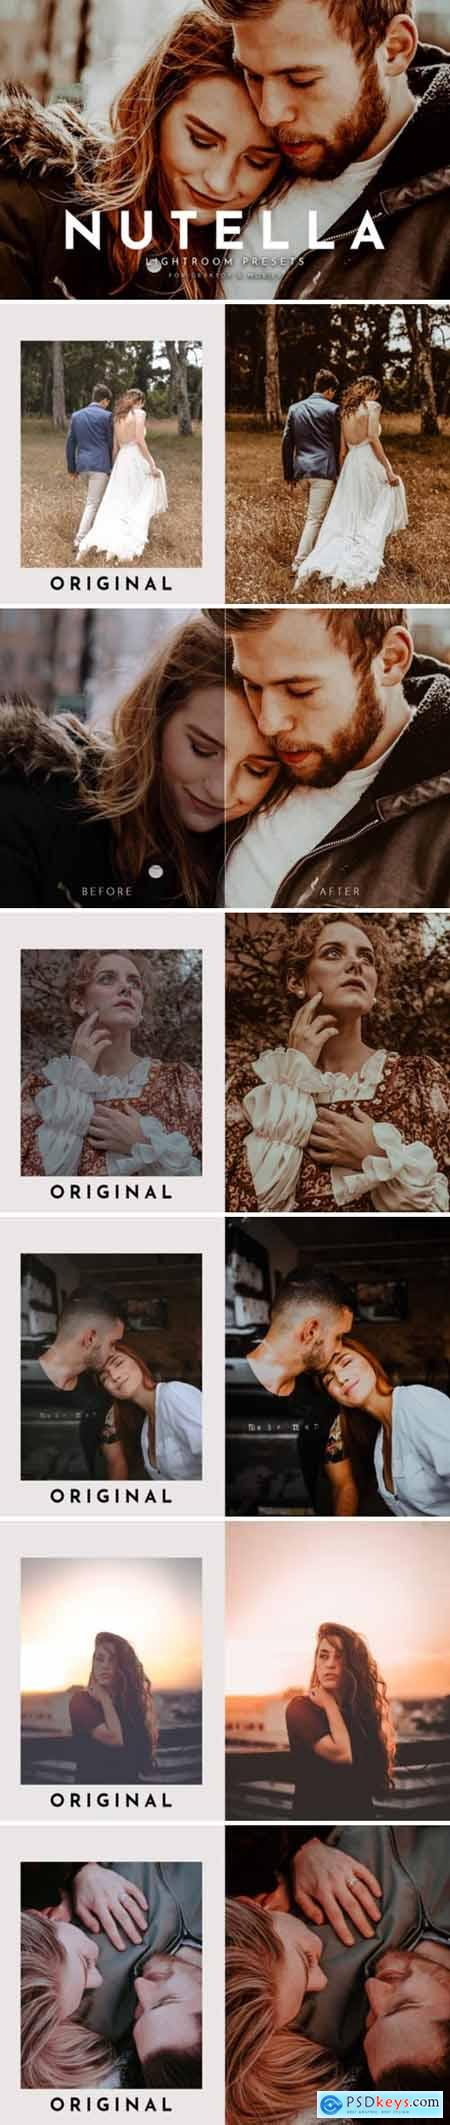 Nutella Lightroom Presets Pack 3826604